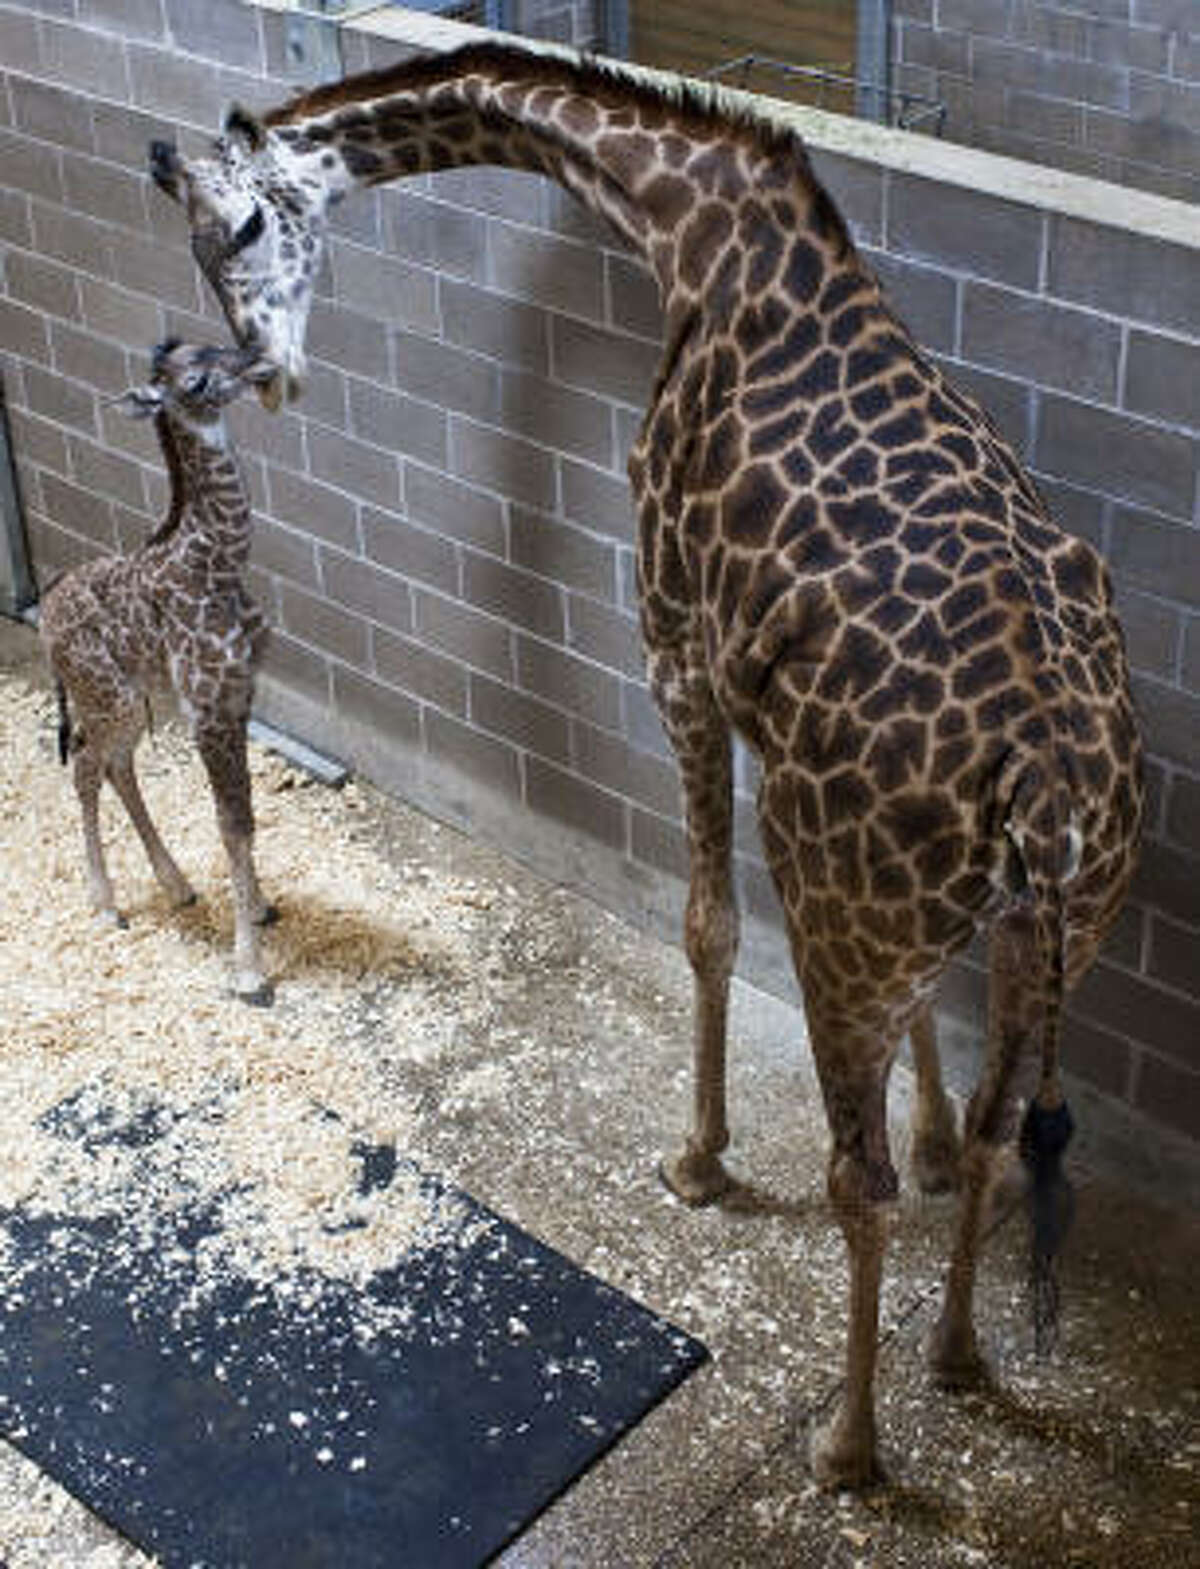 A female Masai giraffe, left, was delivered by mom Tyra shortly after 5 p.m. Friday at the McGovern Giraffe Exhibit at The African Forest following a 14 month pregnancy.